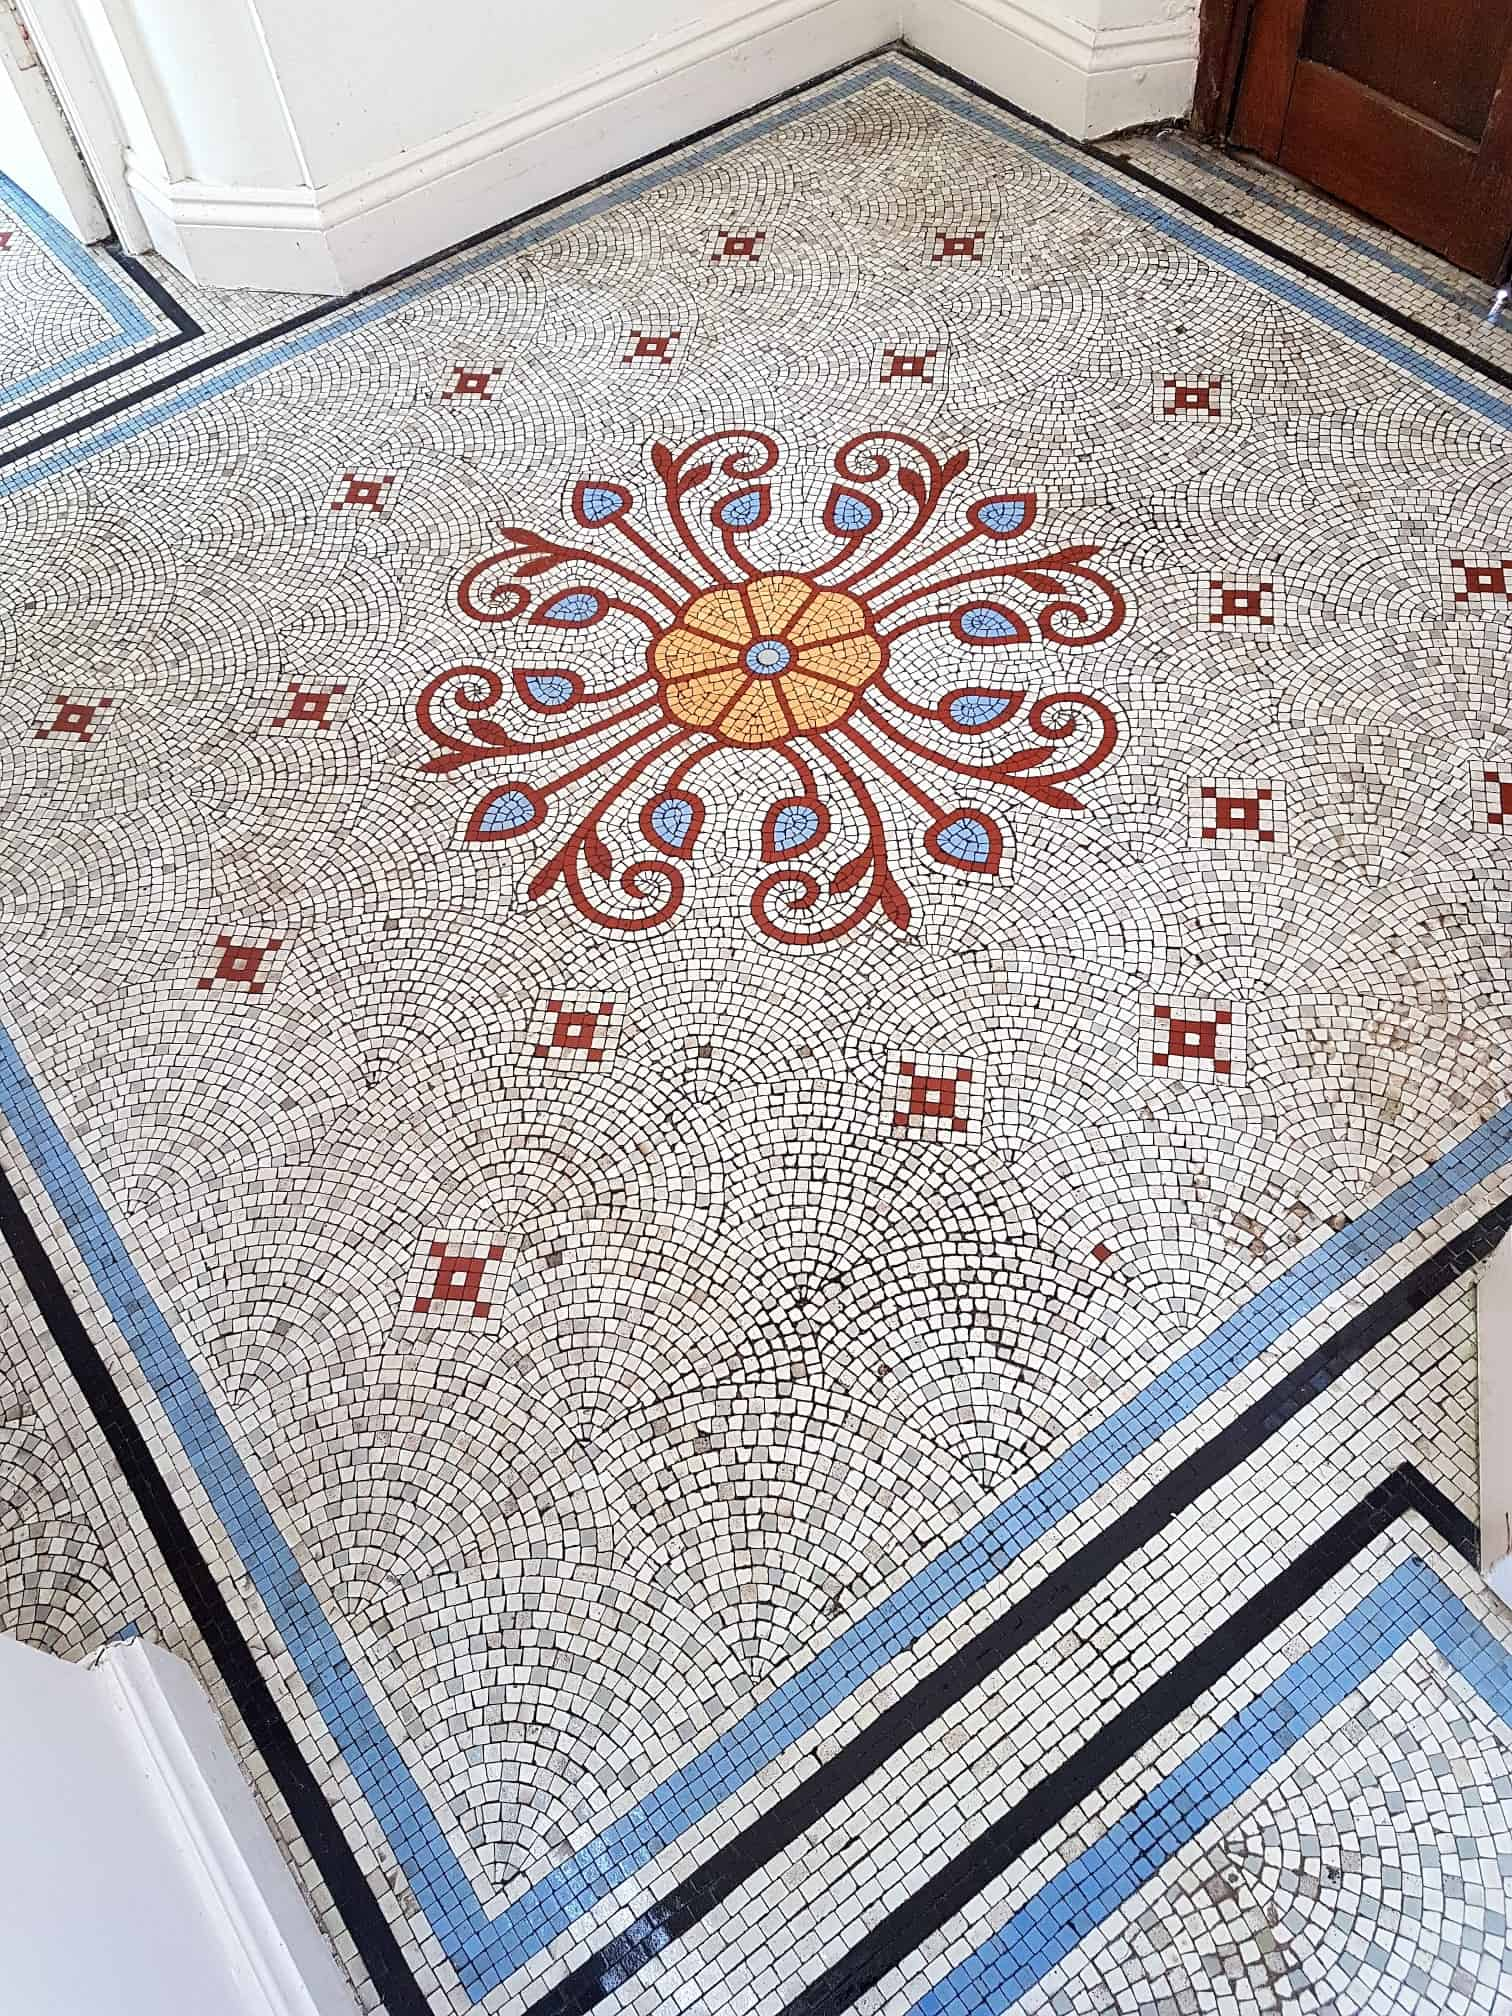 Mosaic Tiled Floor After Renovation Ilkley